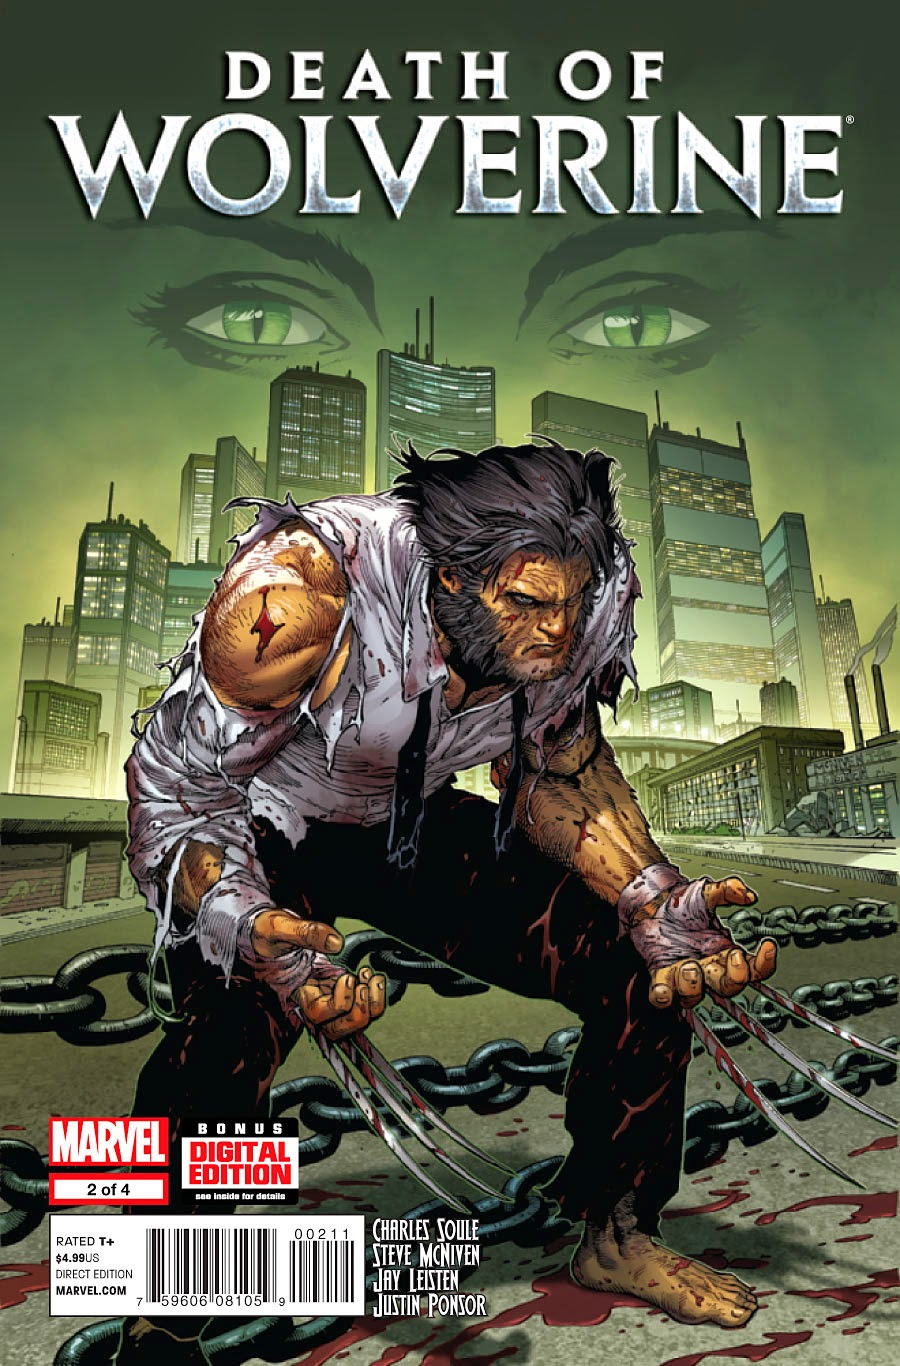 Death of Wolverine #2 Cover Steven McNiven Charles Soule